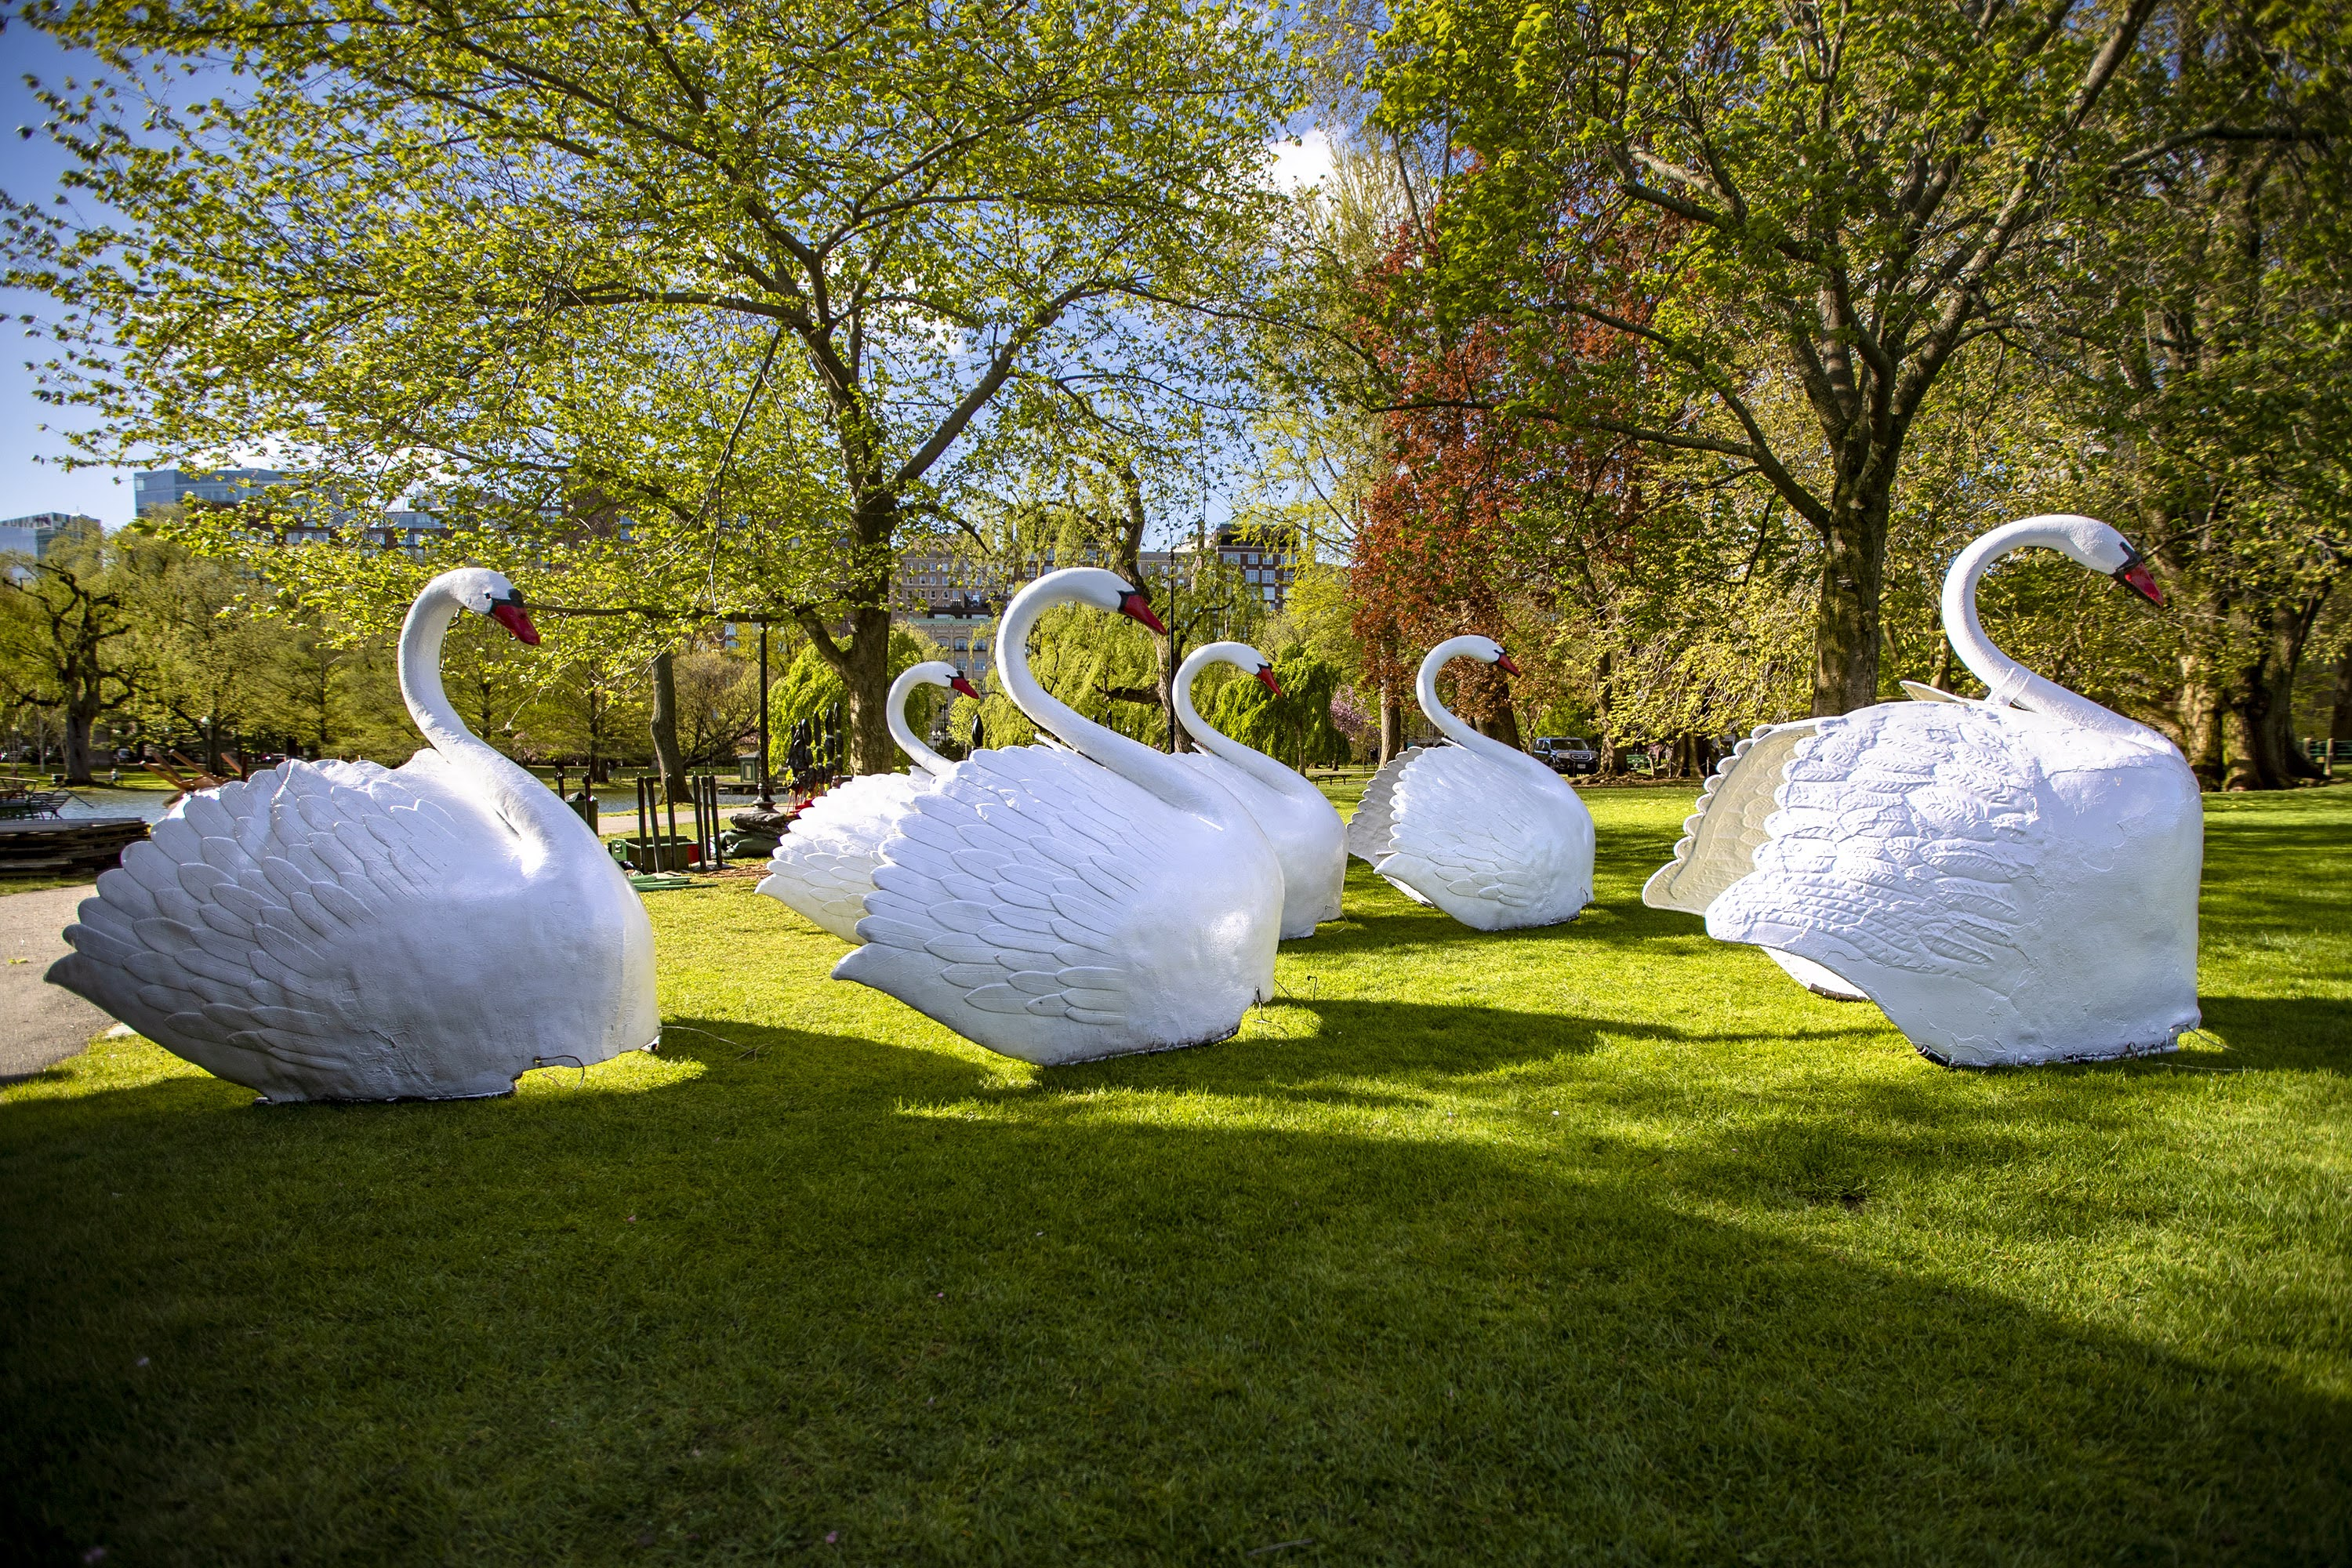 Six swan figures wait on the grass to be mounted onto their respective pontoons being assembled in the Public Garden. (Jesse Costa/WBUR)